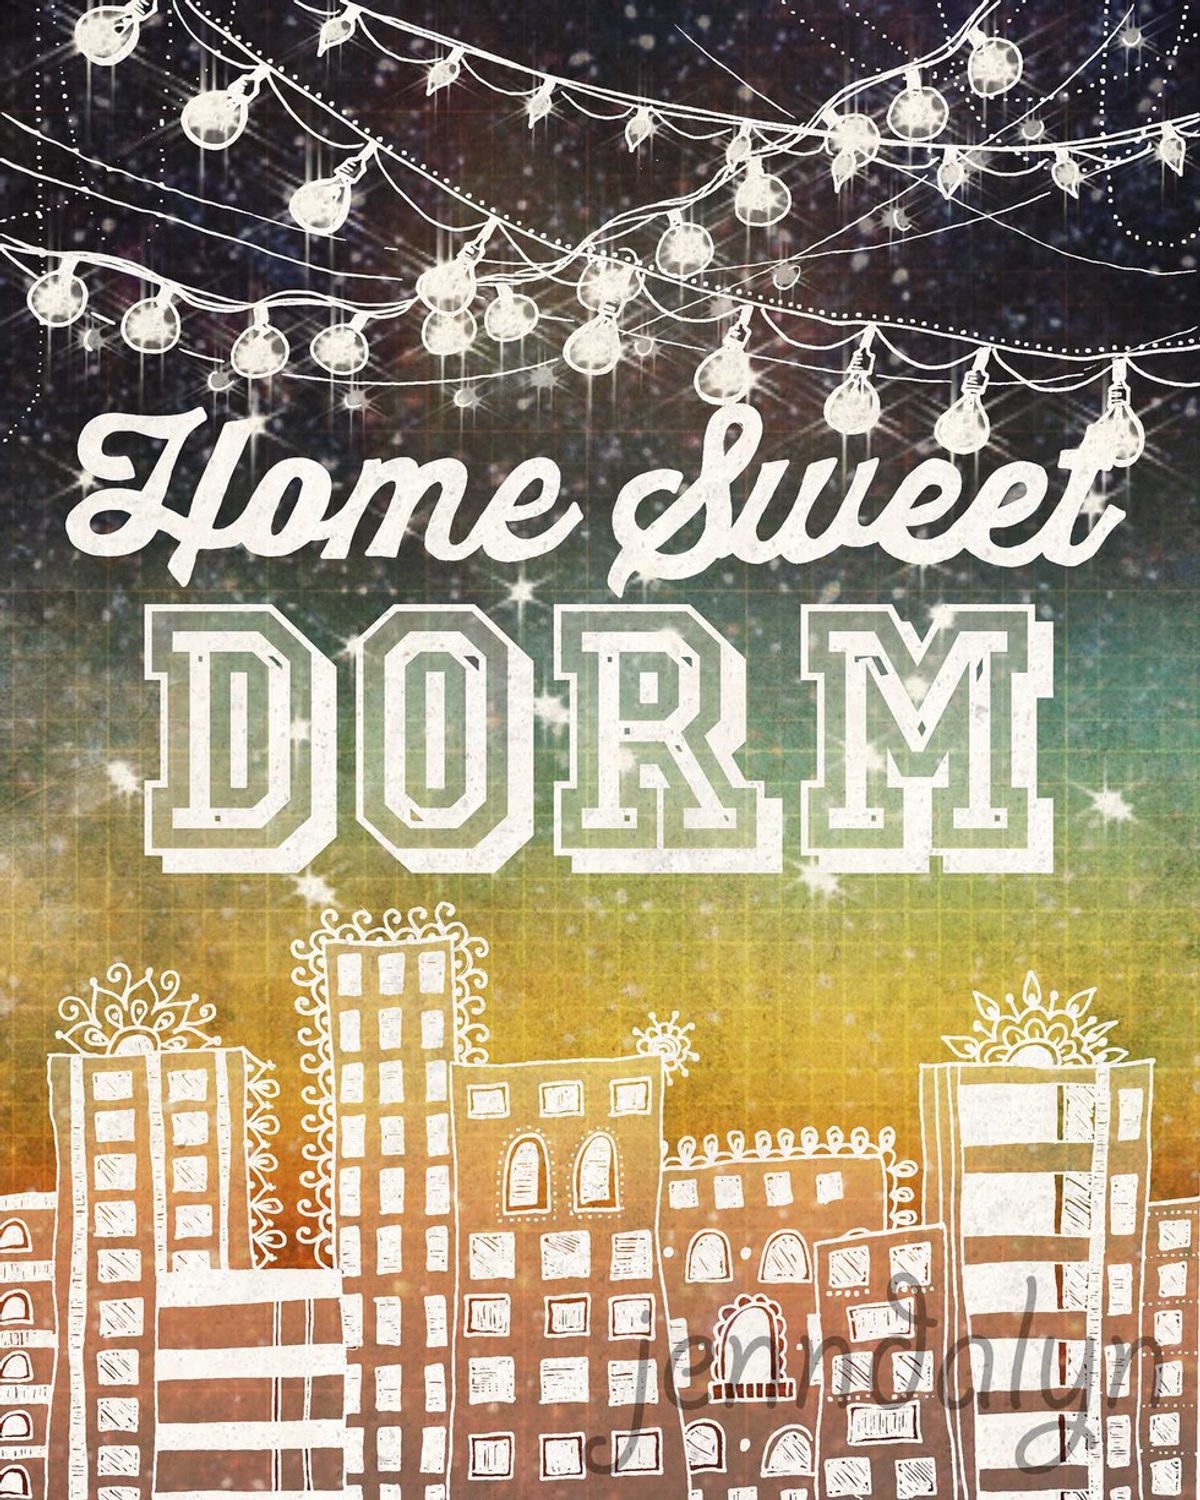 Making Your Dorm a Home